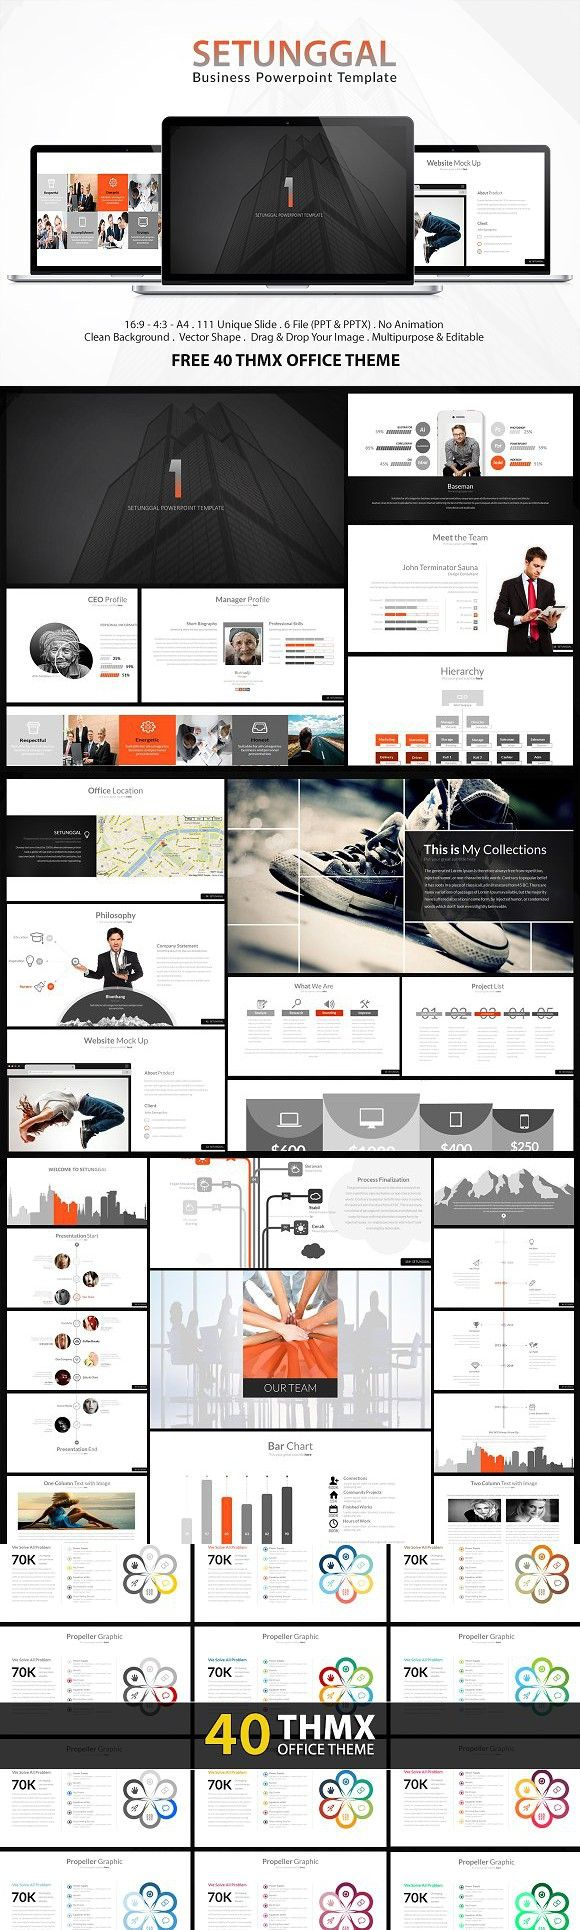 228 best Google Slides Templates images on Pinterest | Power point ...